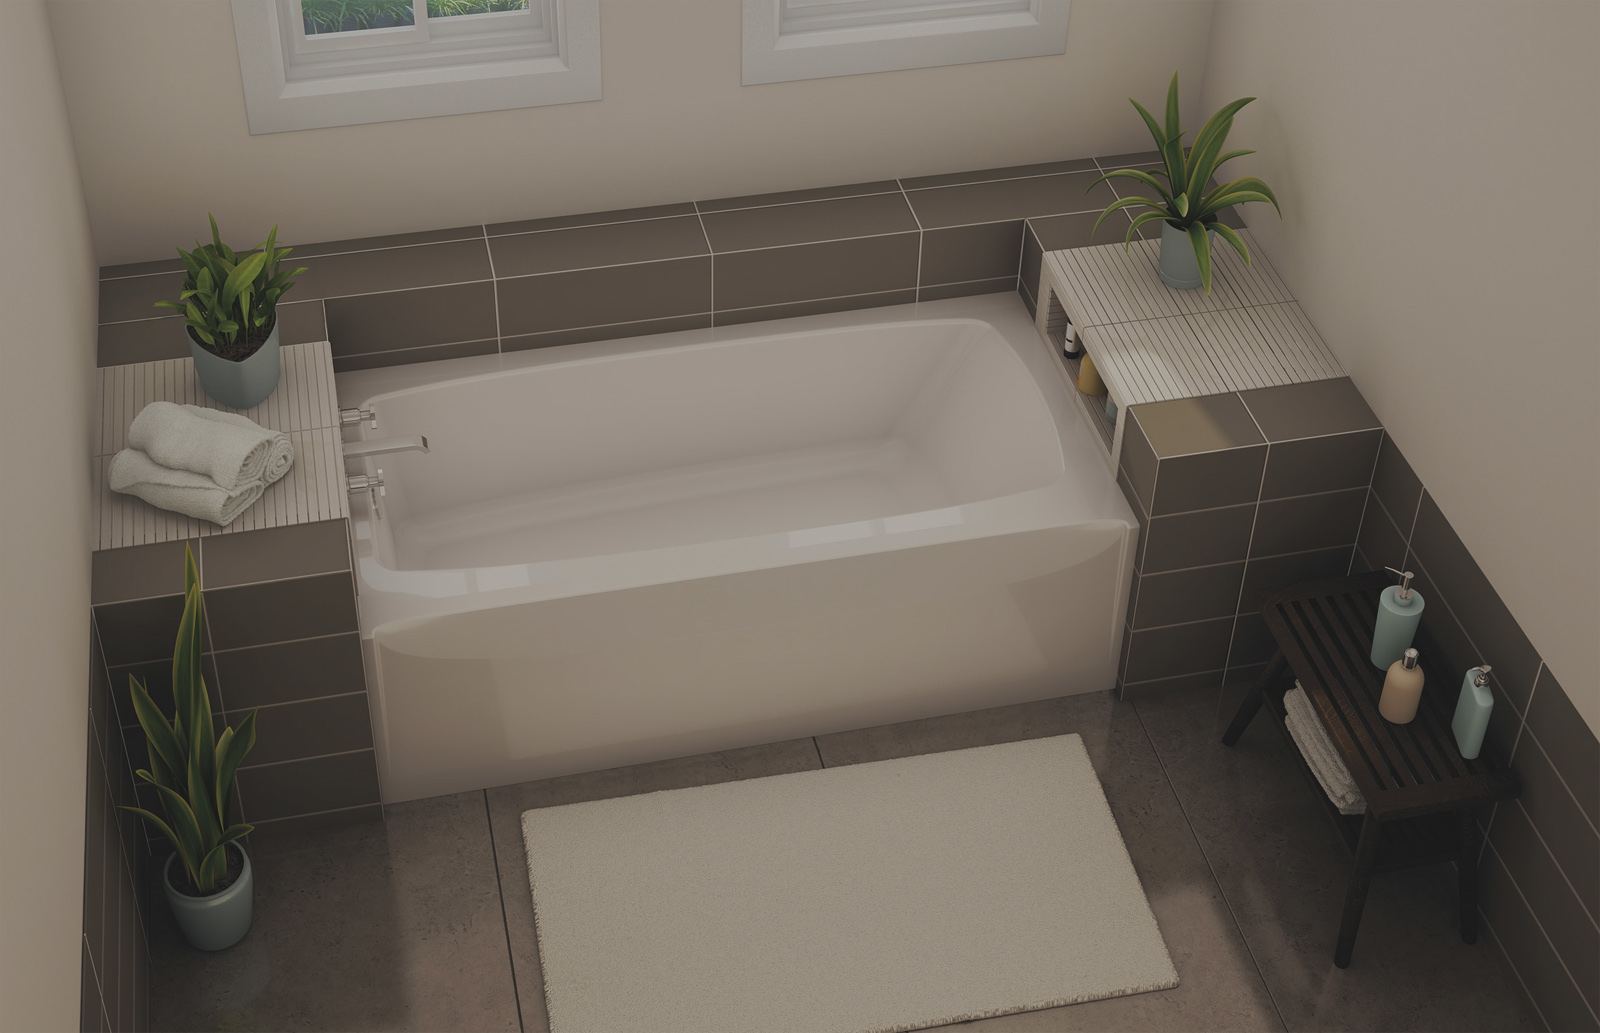 Residential Bathroom Refiinishing Services in San Diego